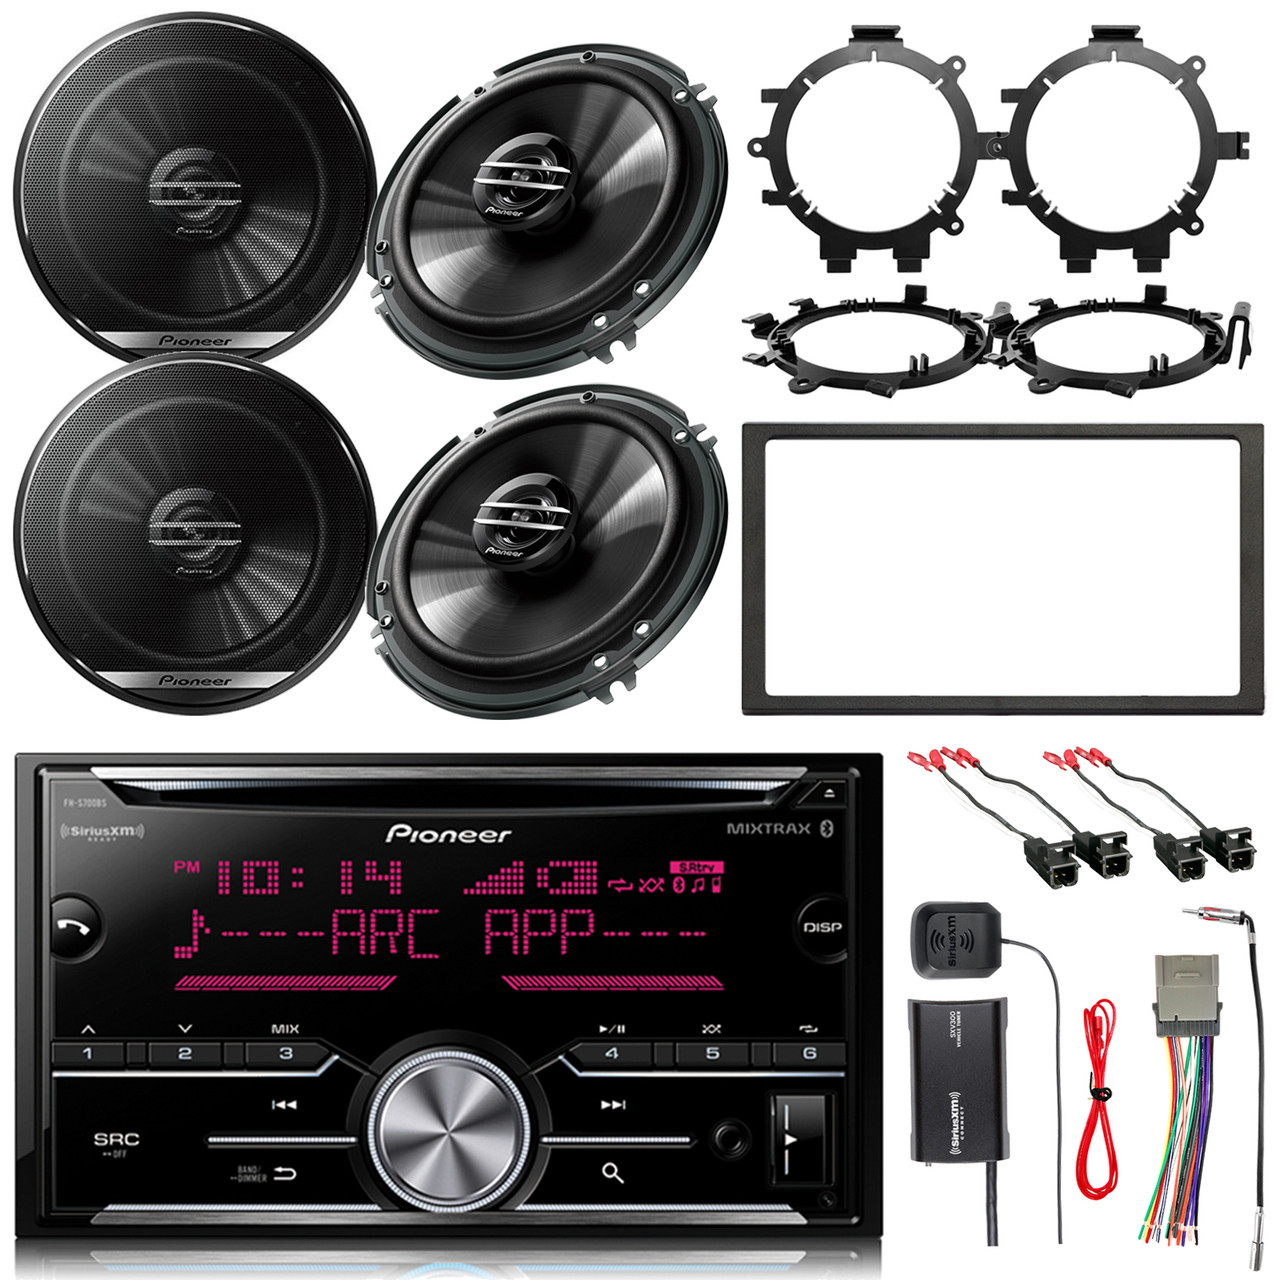 hight resolution of pioneer 2din cd bluetooth receiver 4x 6 5 speakers dash kit stereo wiring harness antenna adapter siriusxm radio tuner 4x speaker wire harness